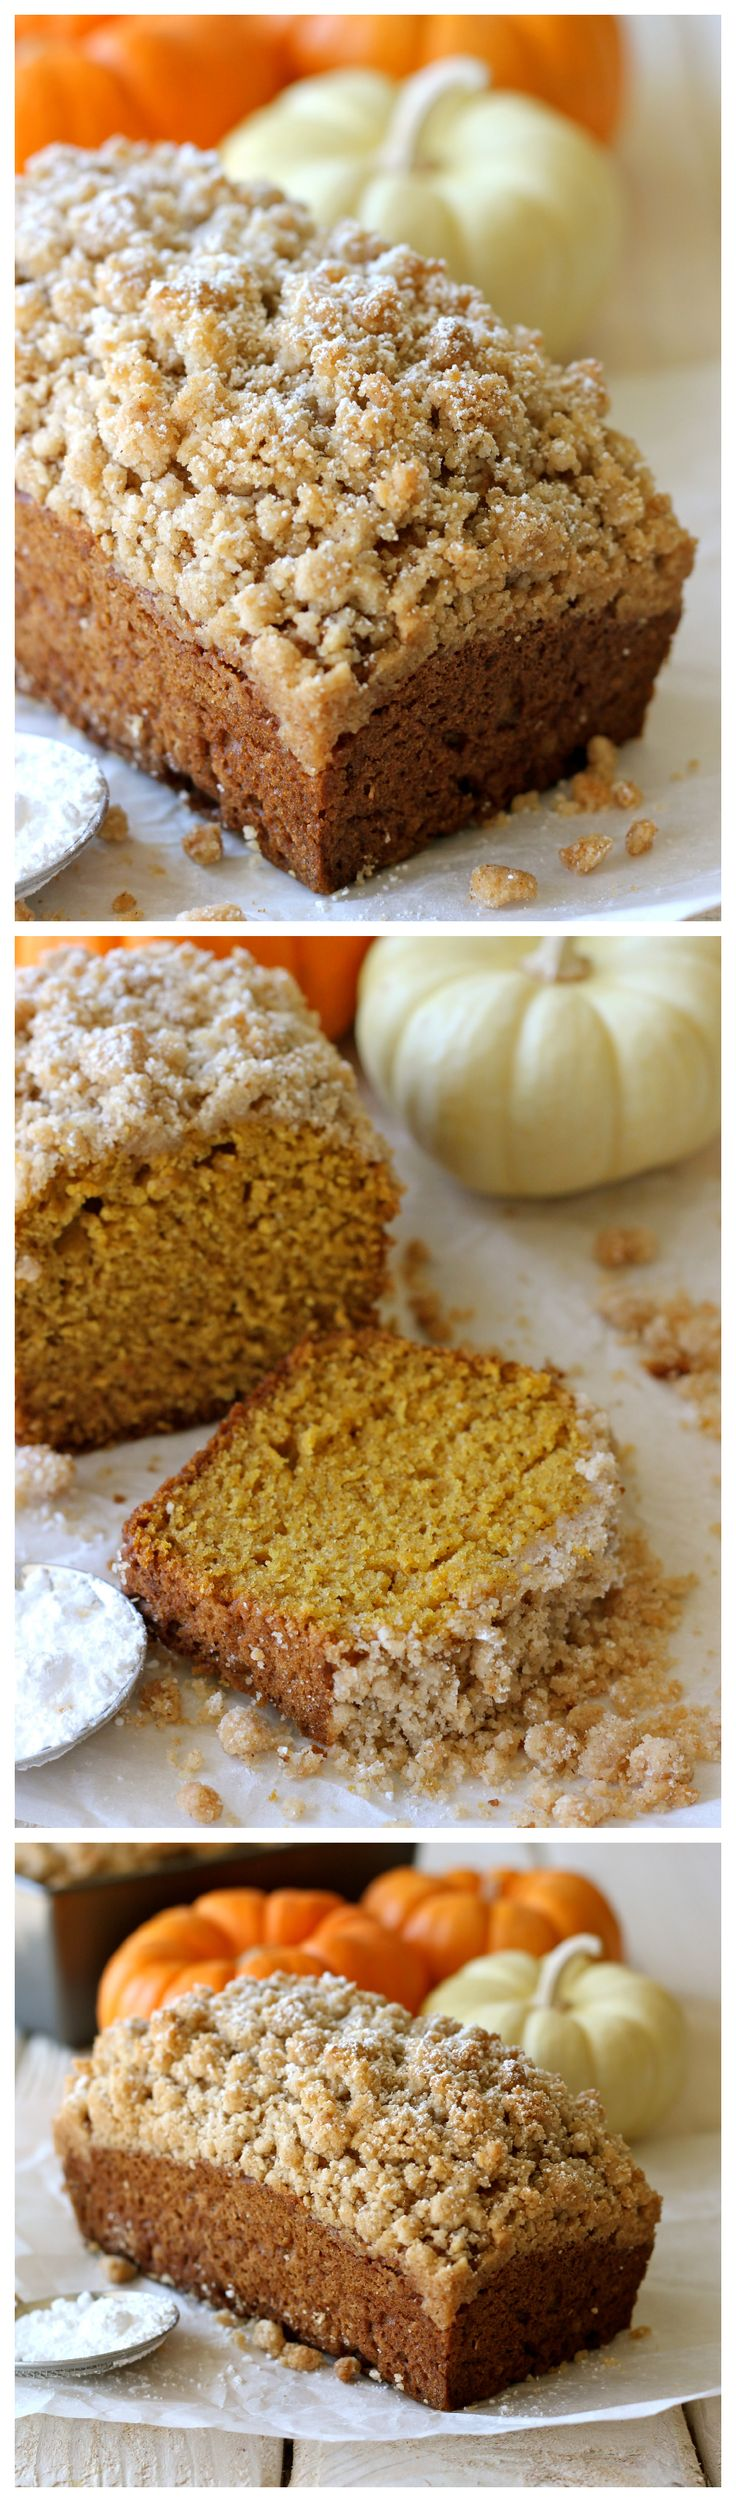 Crumbly Pumpkin Bread - With lightened-up options, this can be eaten guilt-free. And these are so perfect for holiday gift-giving!